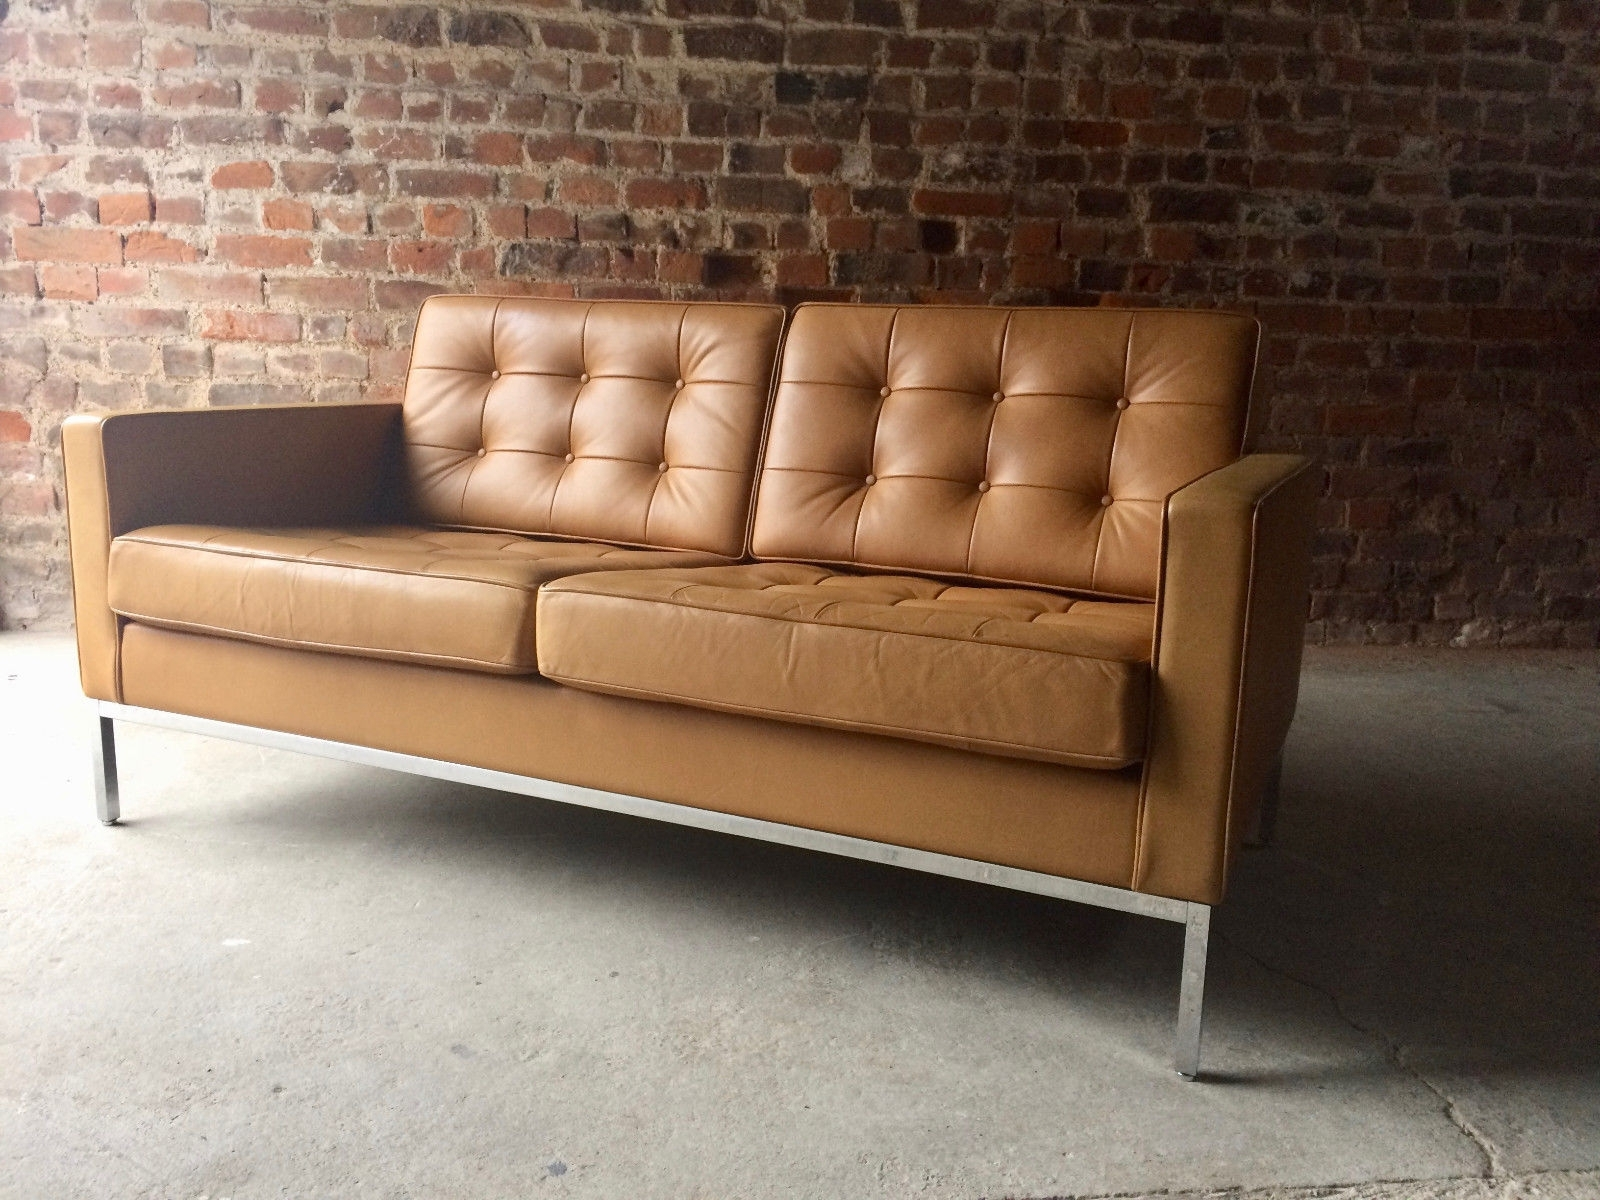 Vintage 2 Seater Leather Sofaflorence Knoll For Knoll For Sale With 2017 Florence Knoll Leather Sofas (View 12 of 15)